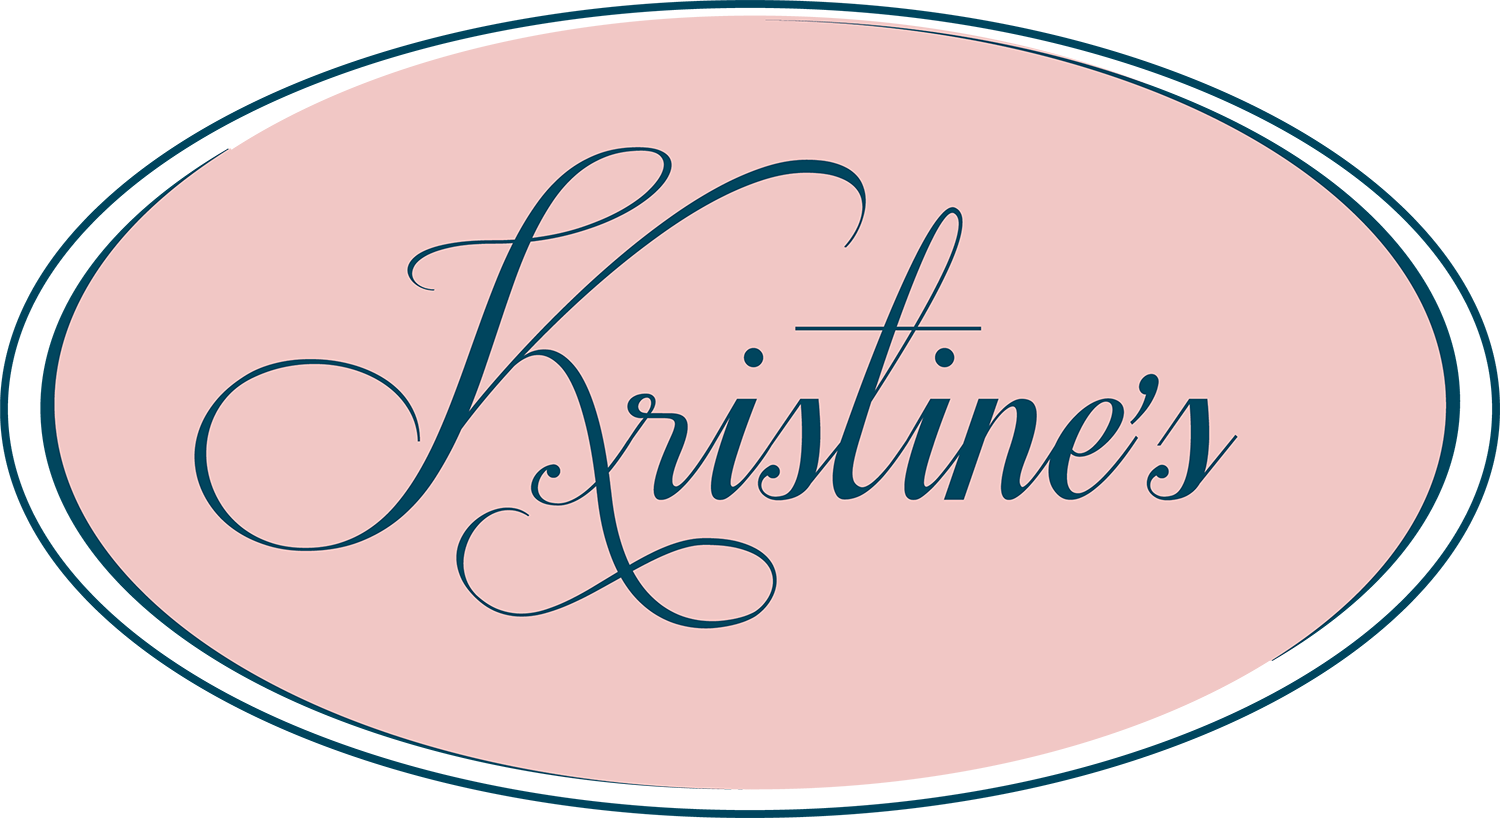 Kristines_color_transparent_small.png